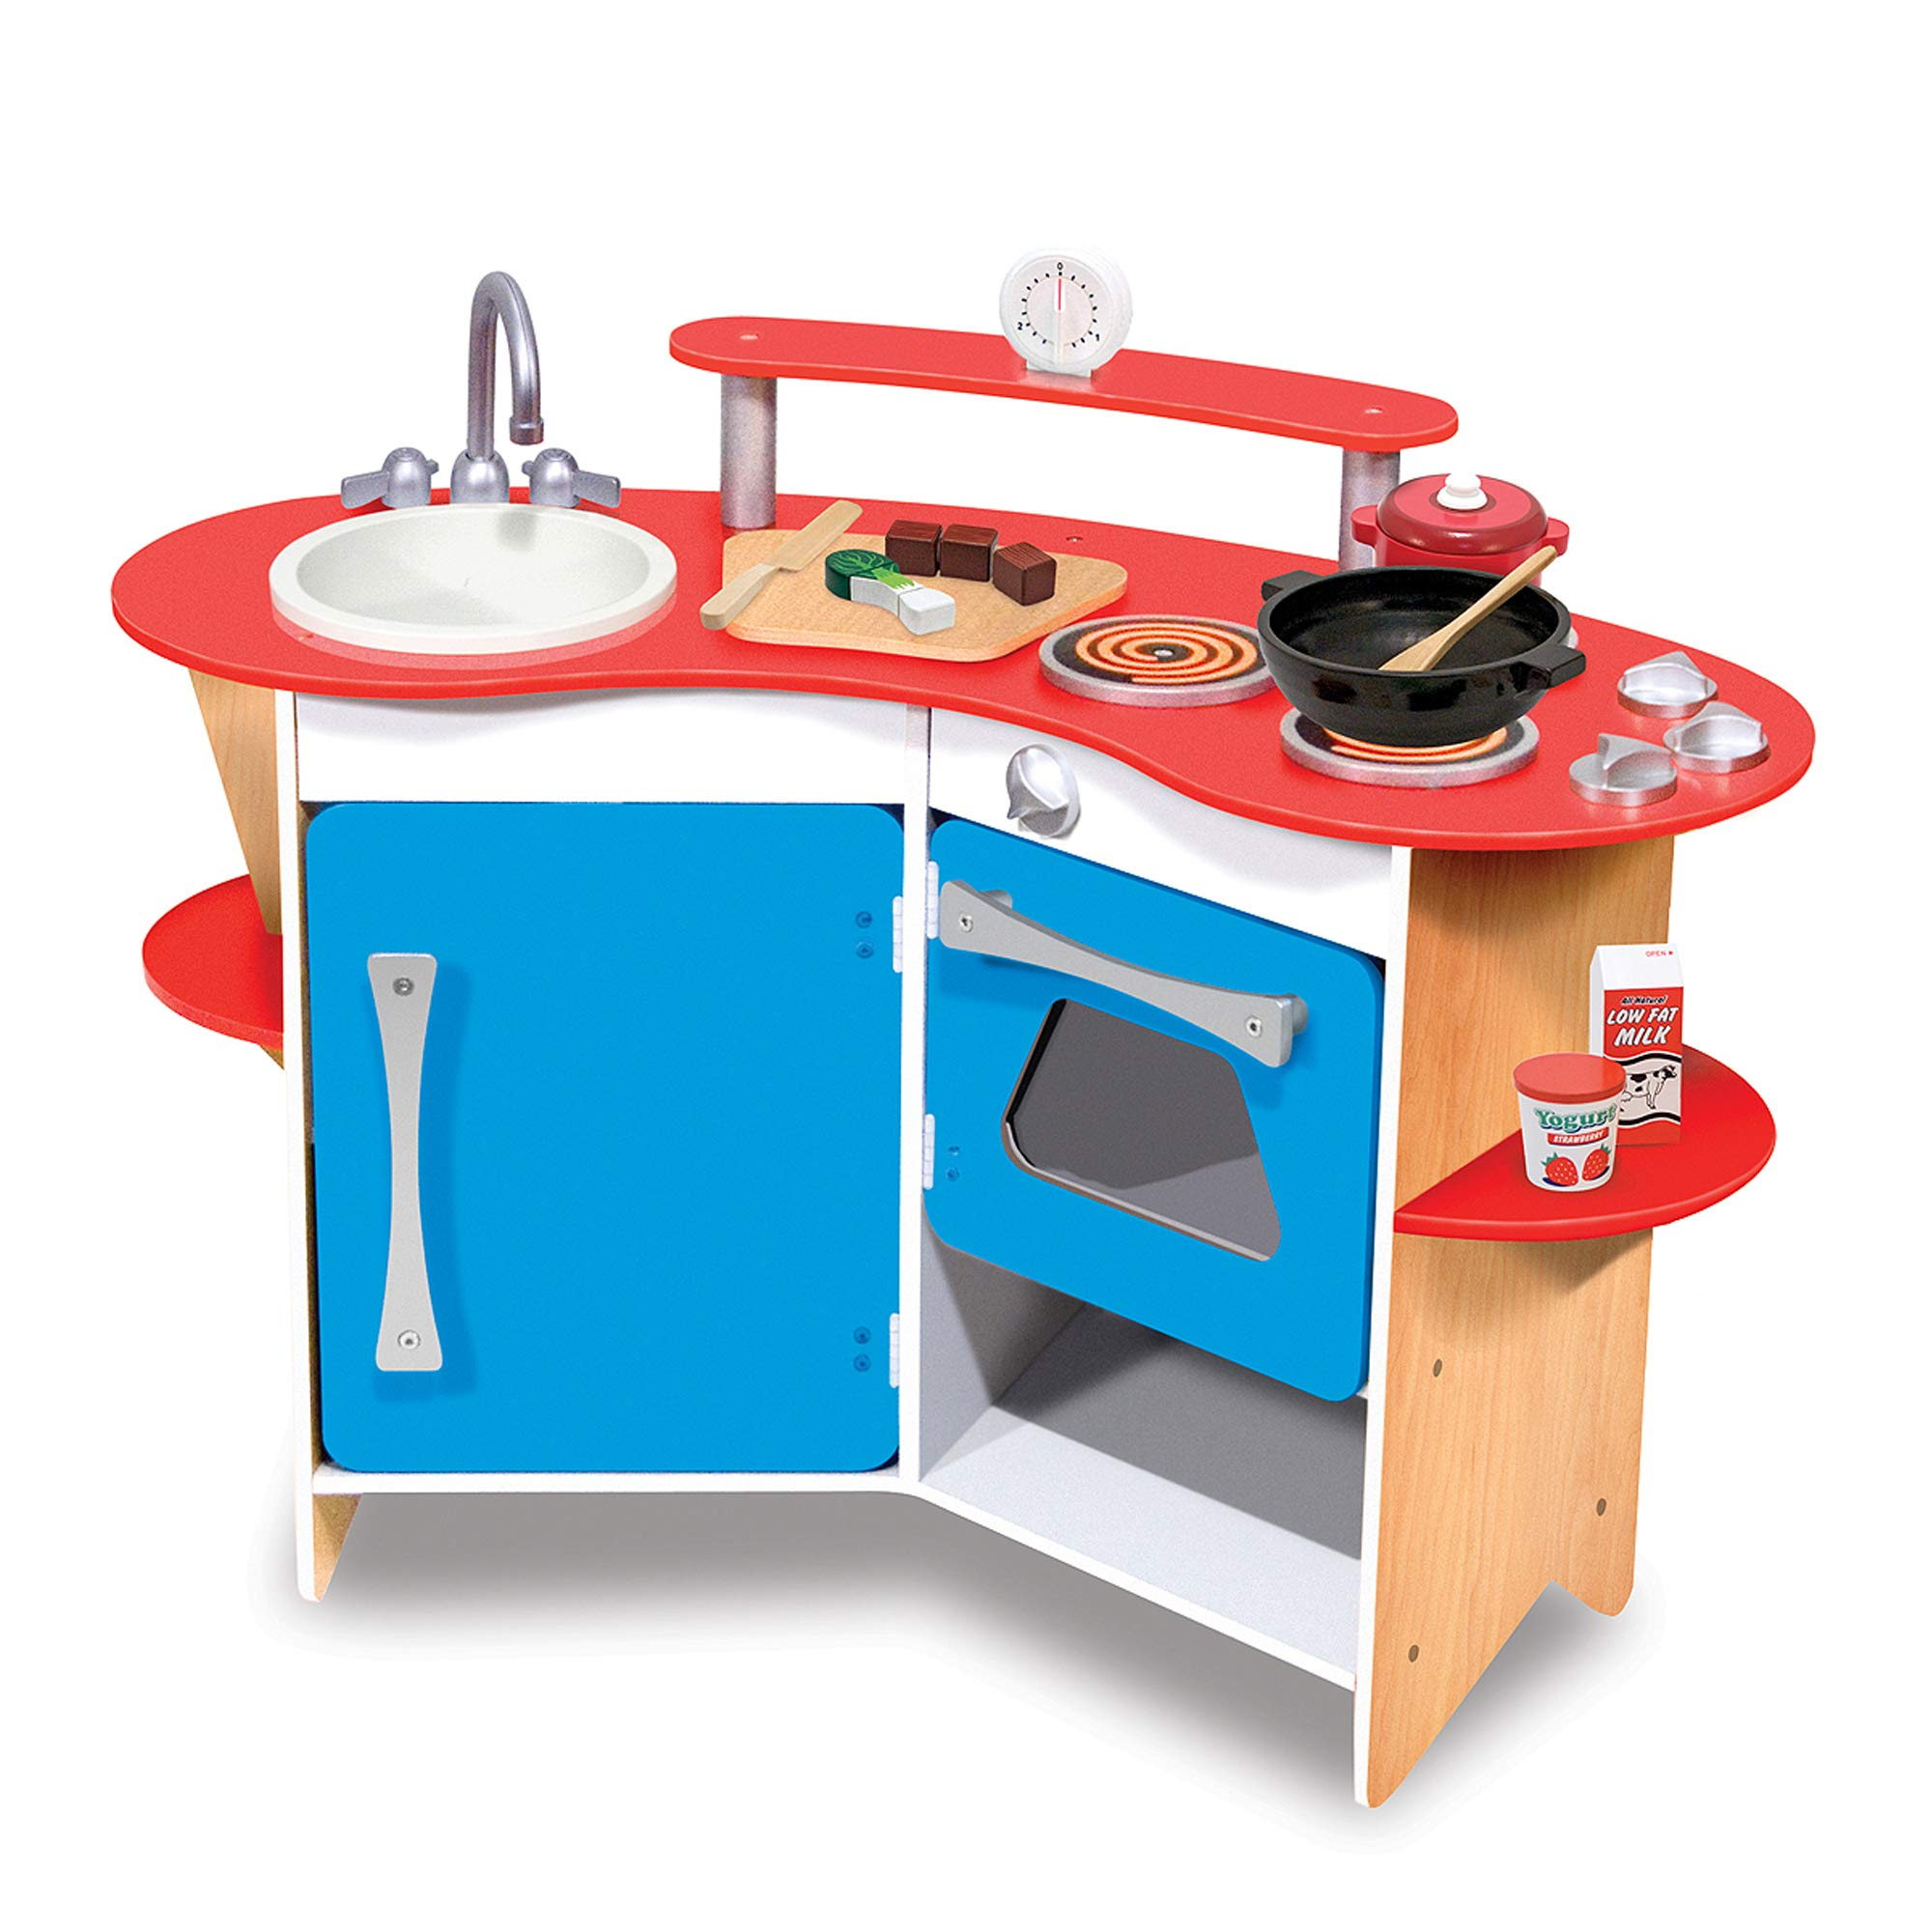 Melissa & Doug Cook's Corner Wooden Pretend Play Toy Kitchen by Melissa & Doug (Image #3)